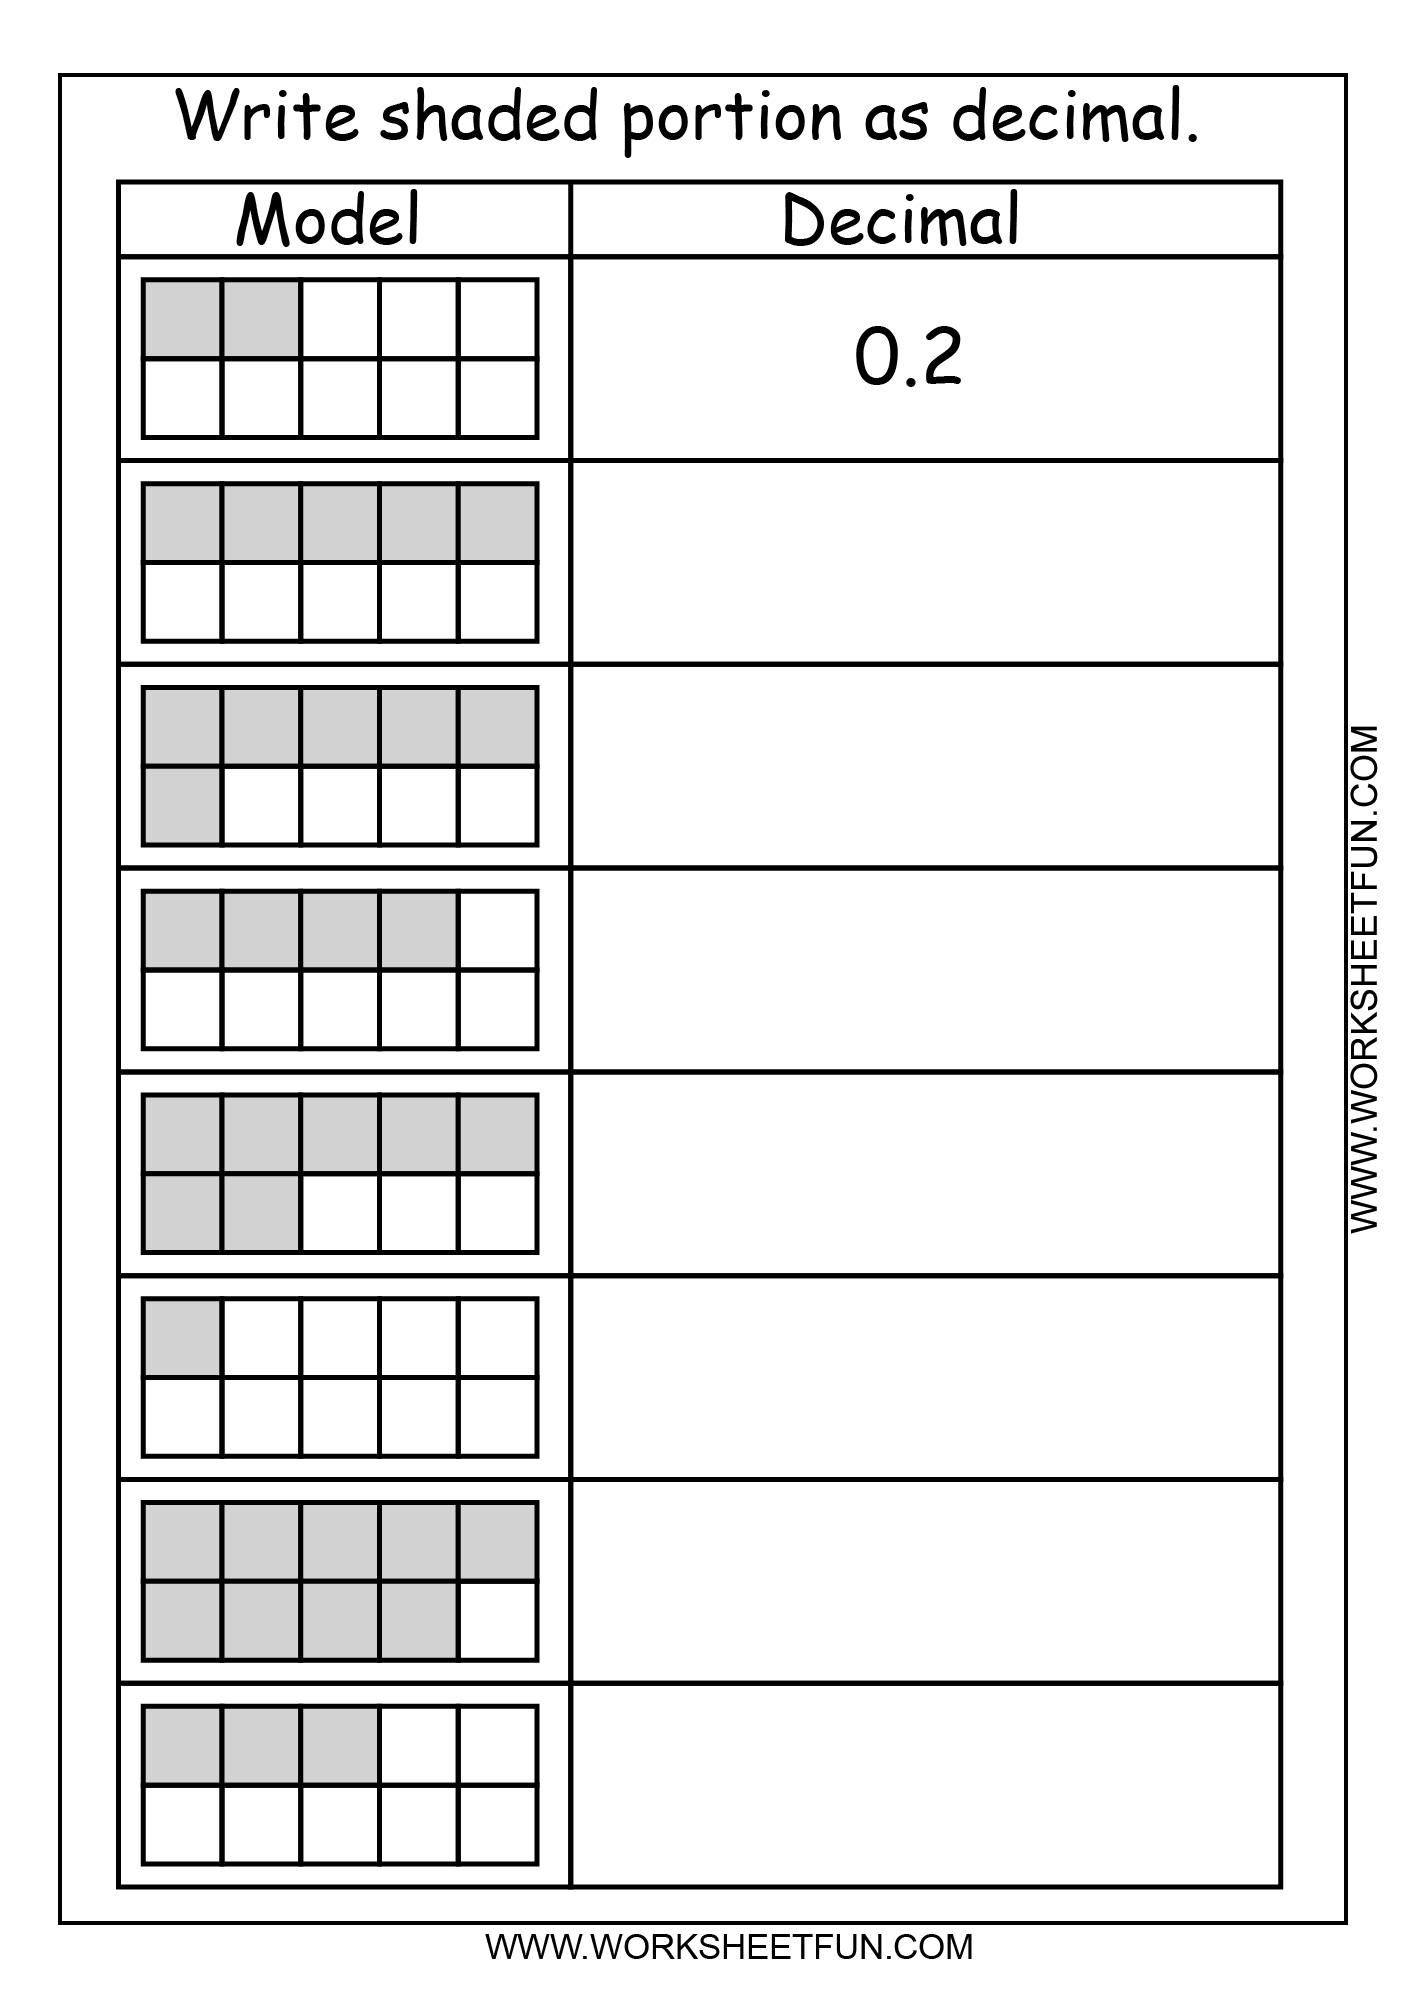 Model Decimal | Printable Worksheets | Math, Teaching Math, Math | Fractions To Decimal Worksheets Printable